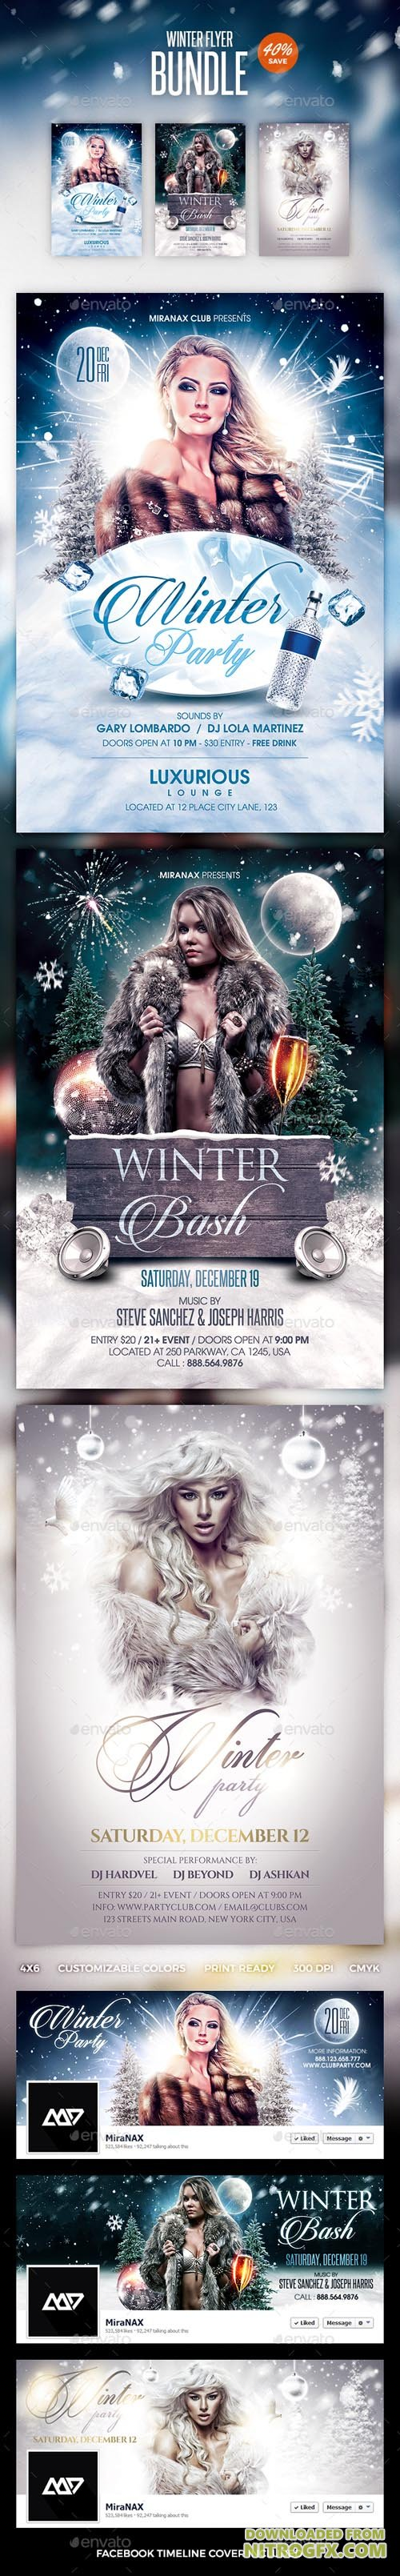 GR - Winter Bash 13666694